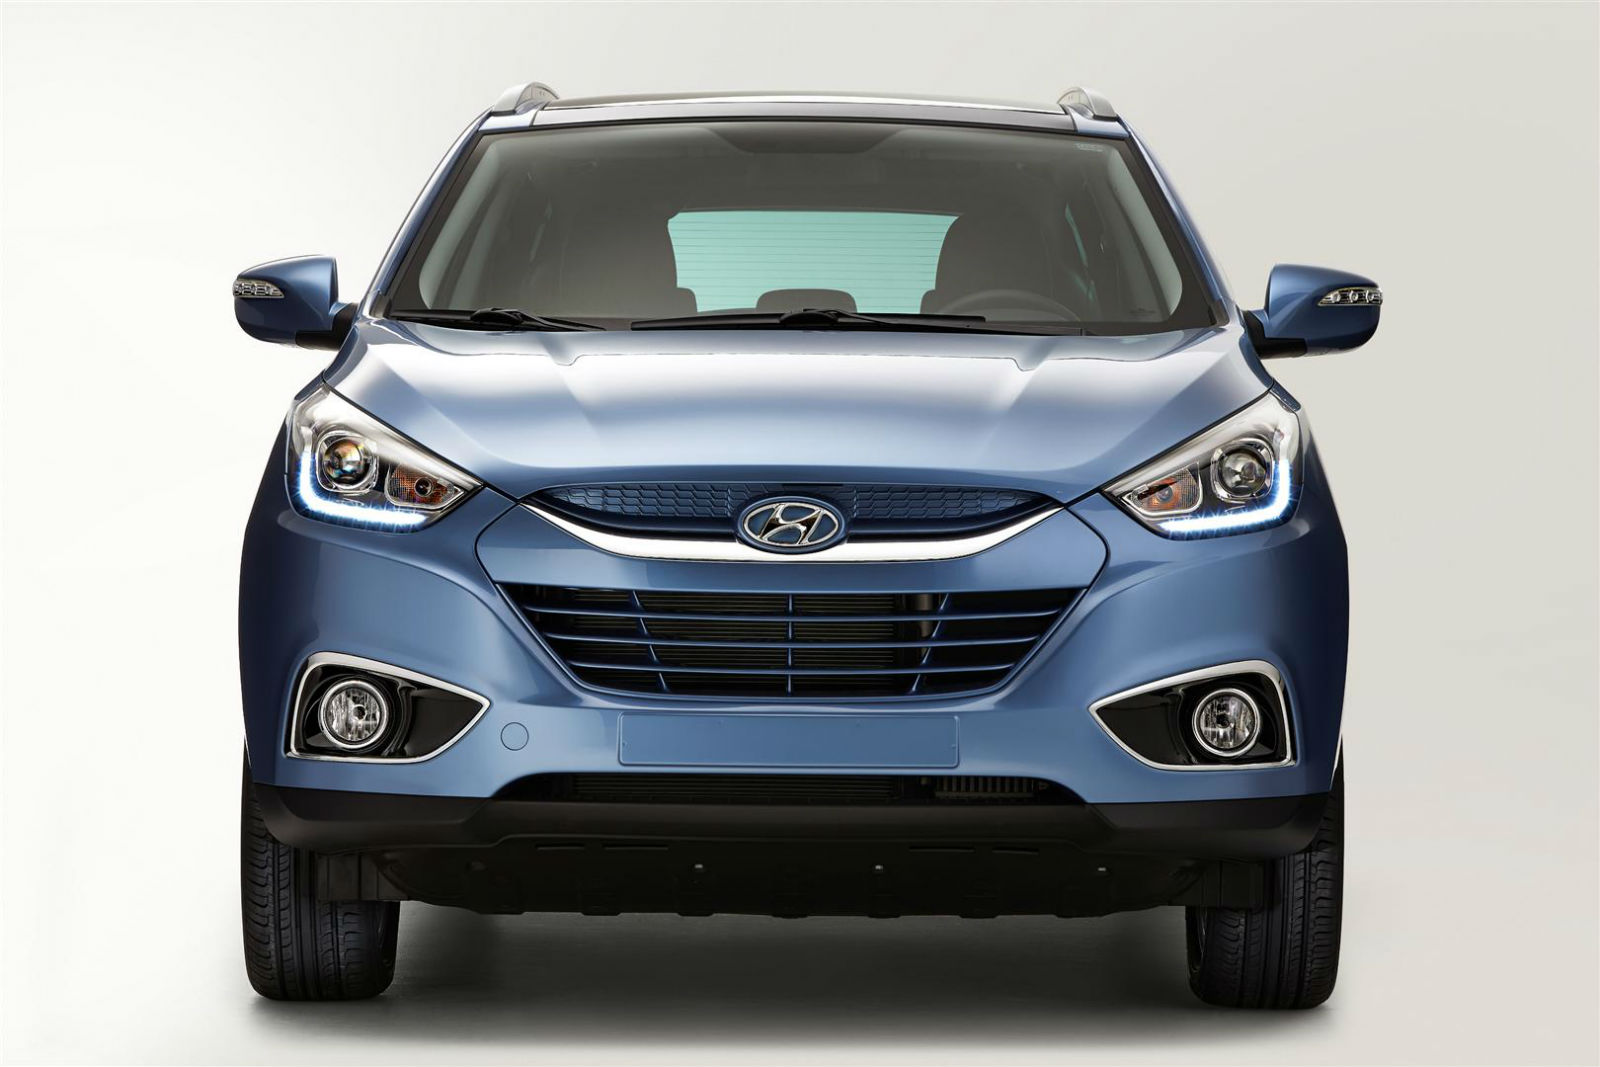 New ix35 is on the move! Hyundai upgraded its fastest